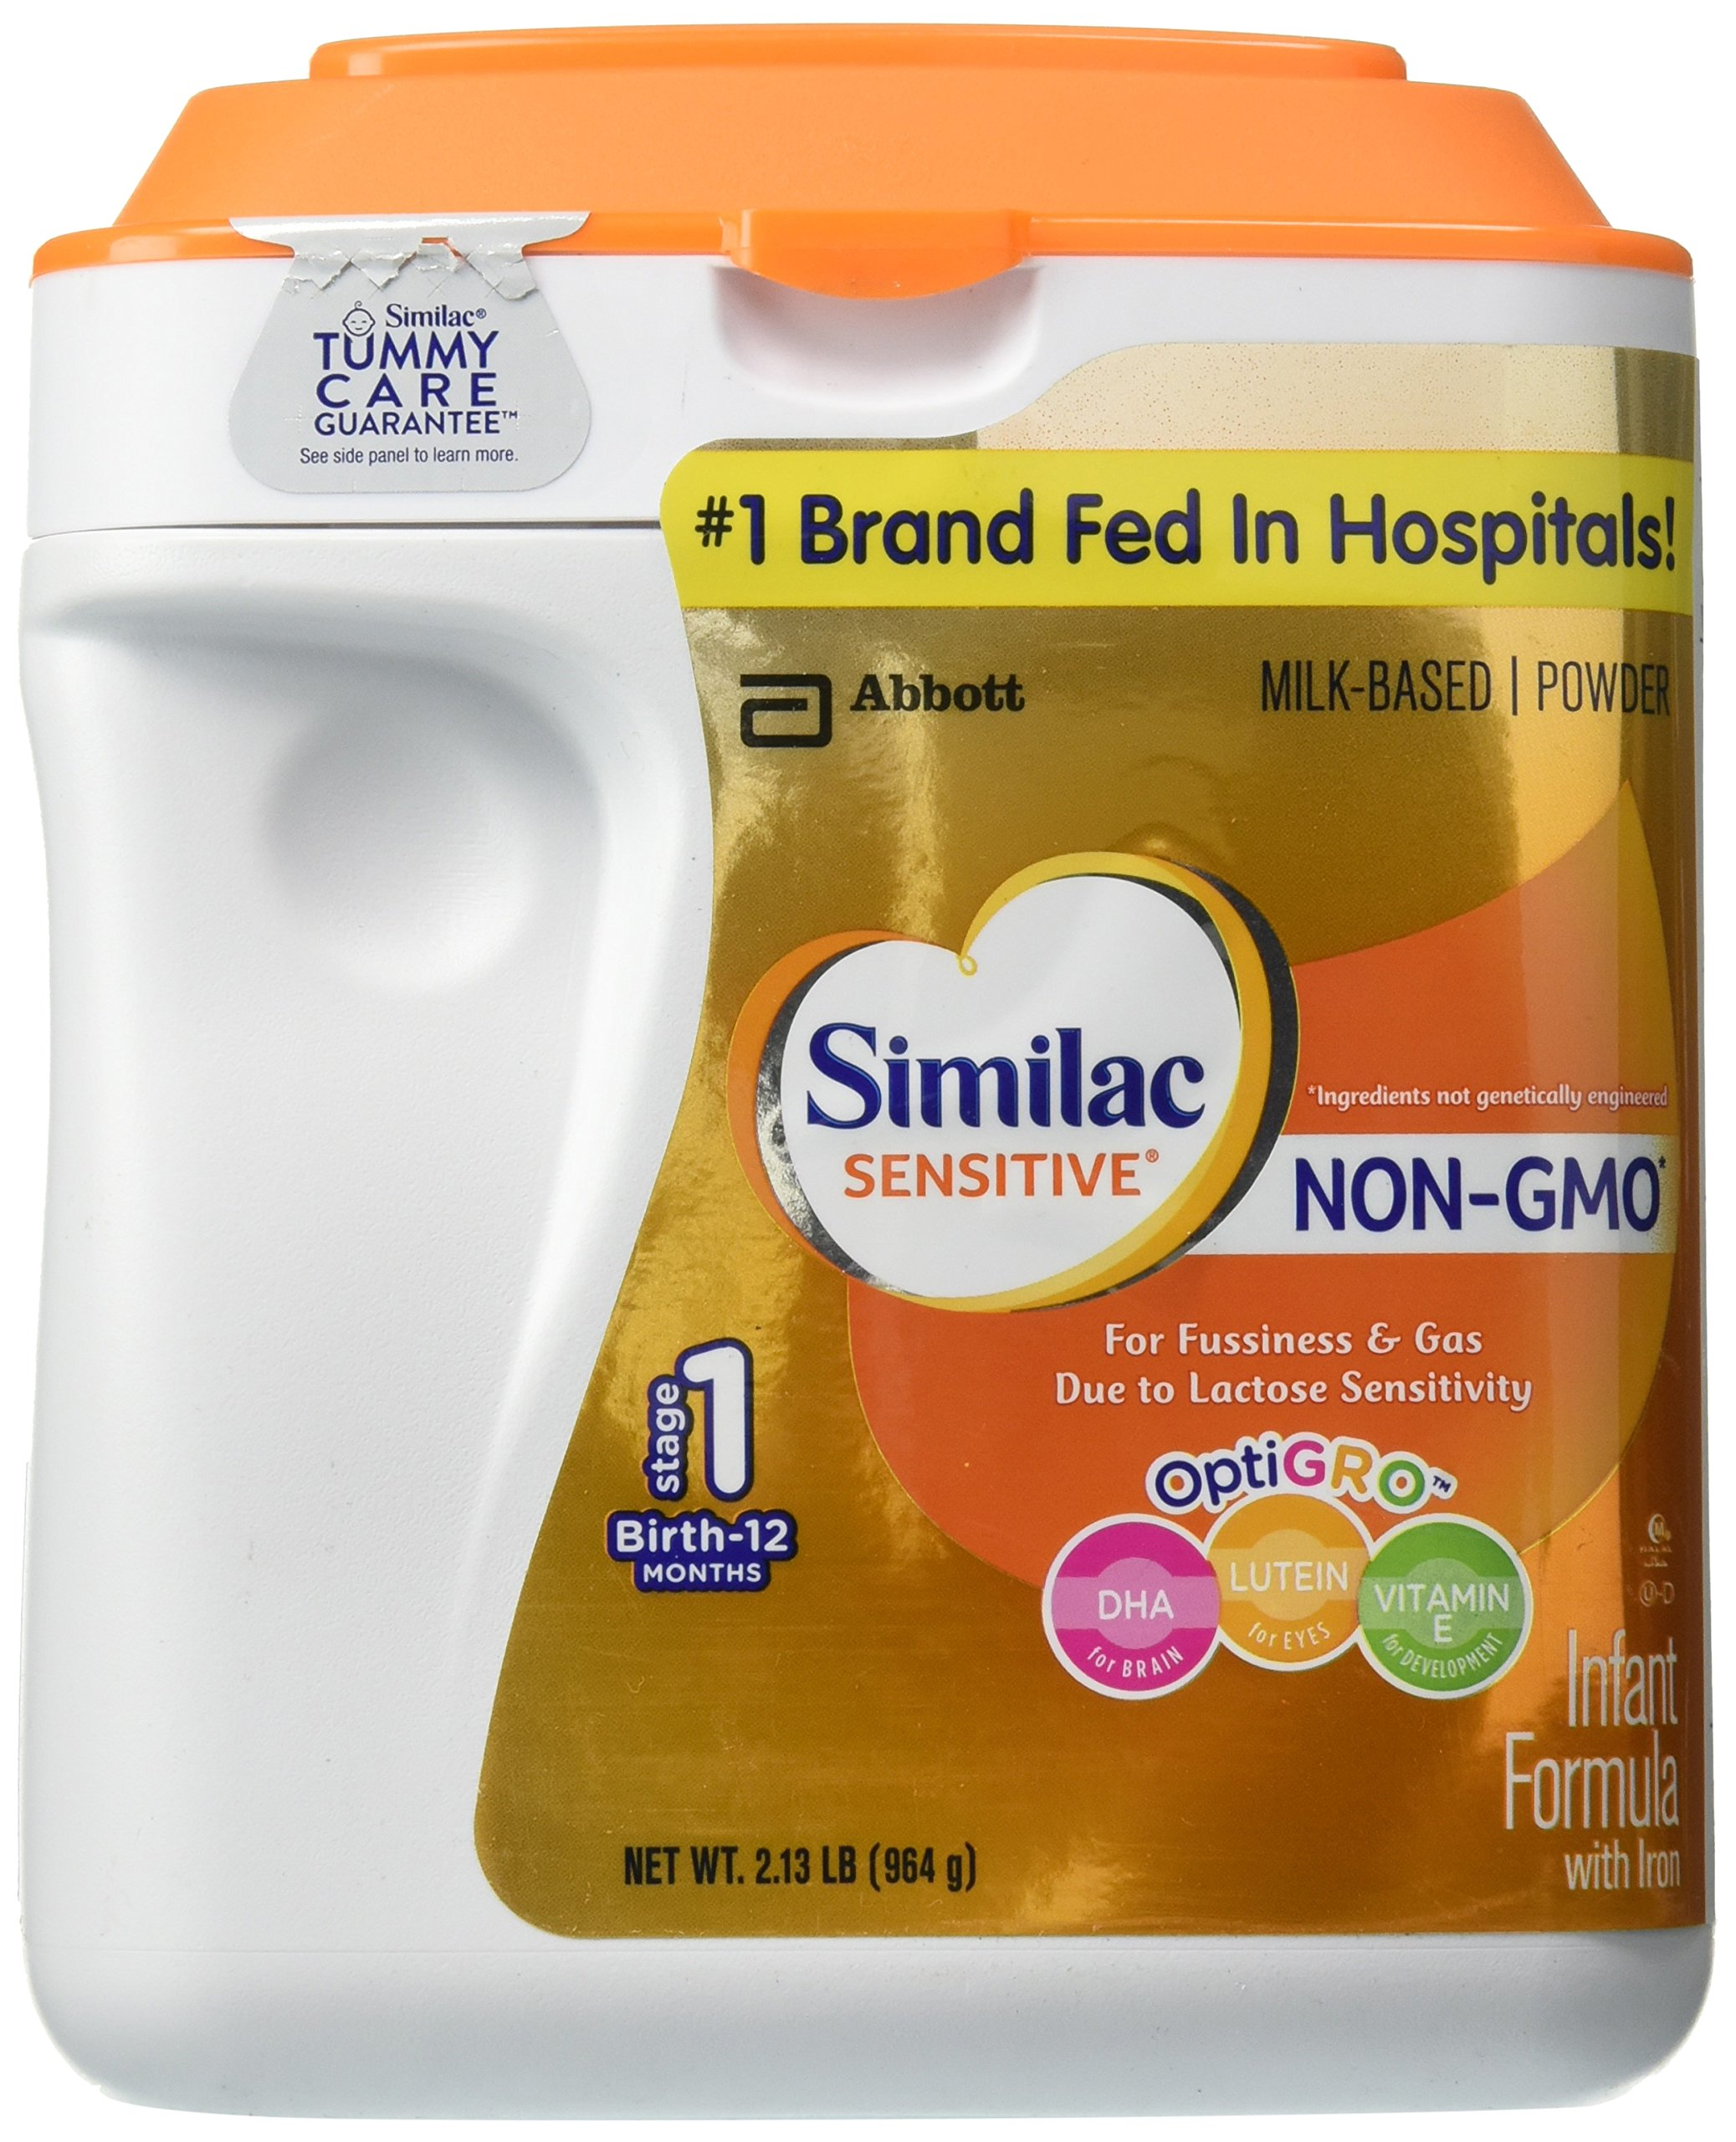 Similac Sensitive Non-GMO Baby Formula - Powder - 34 oz